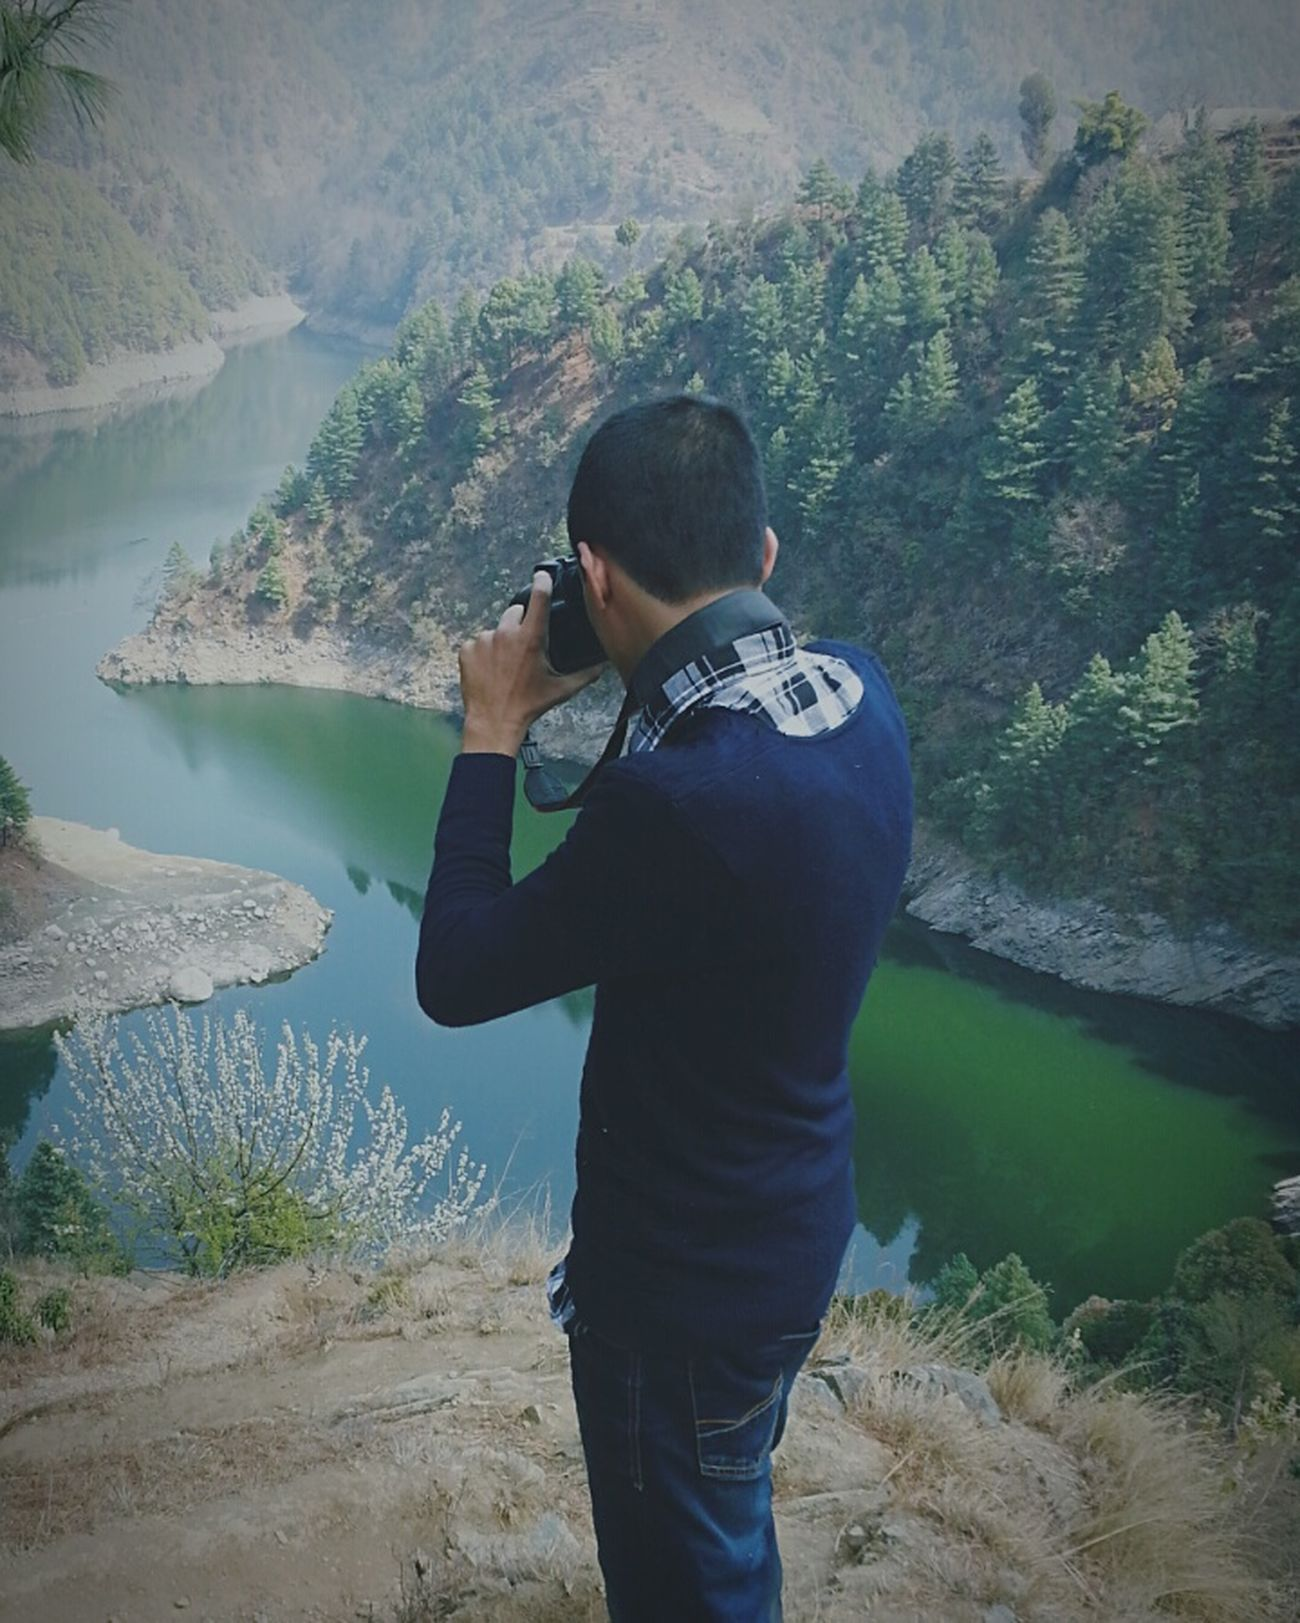 Happy Photography Lake View Awesome_nature_shots Enjoying The Sights Wonderful Day Like It